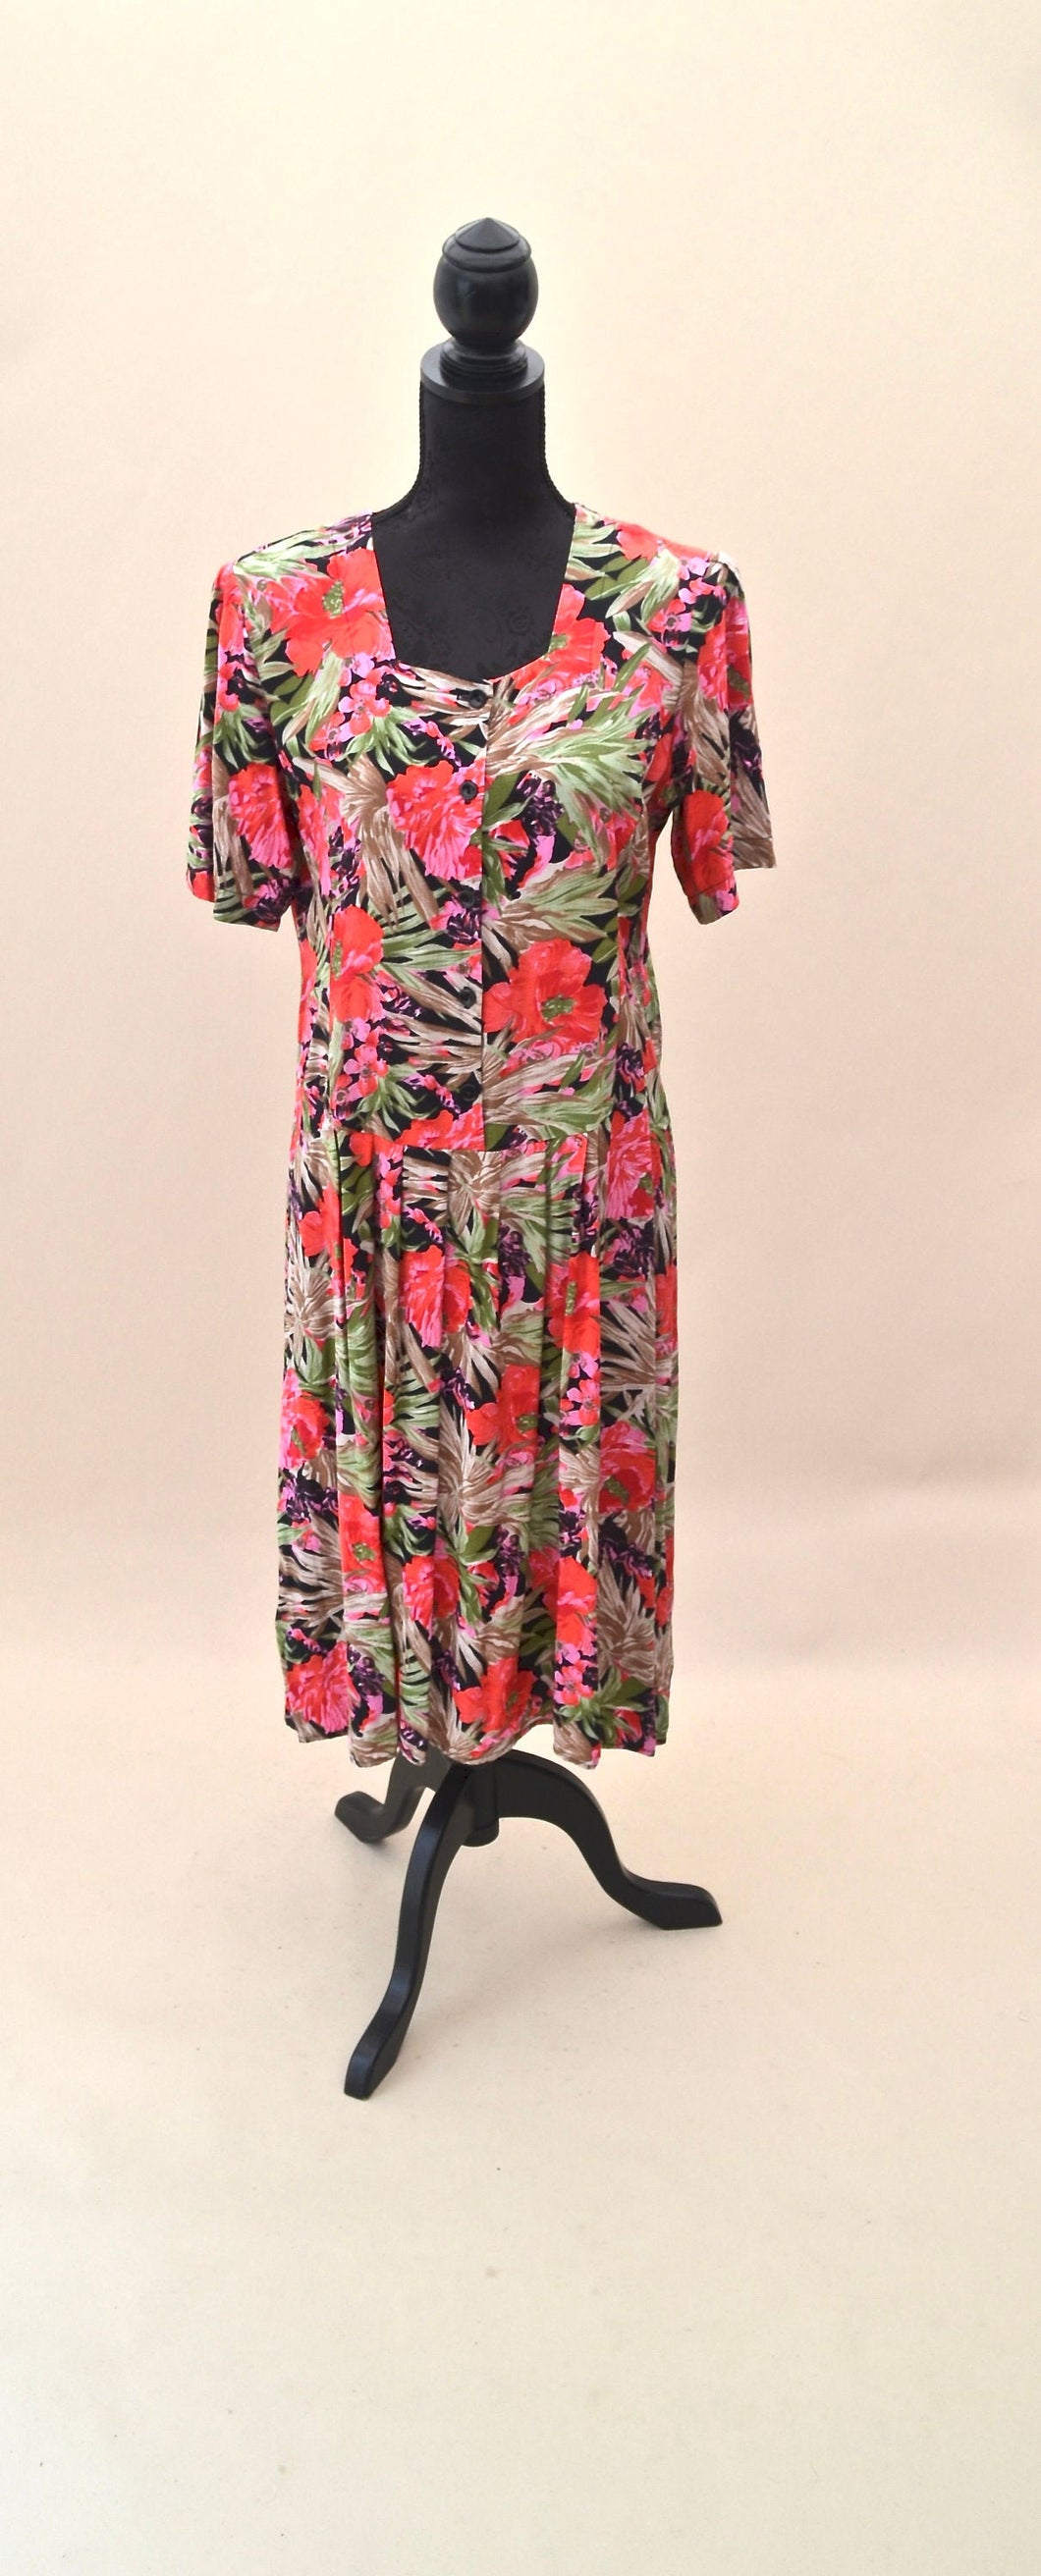 1980s floral dress | Short sleeve dress | Drop waist dress | Est UK size 14